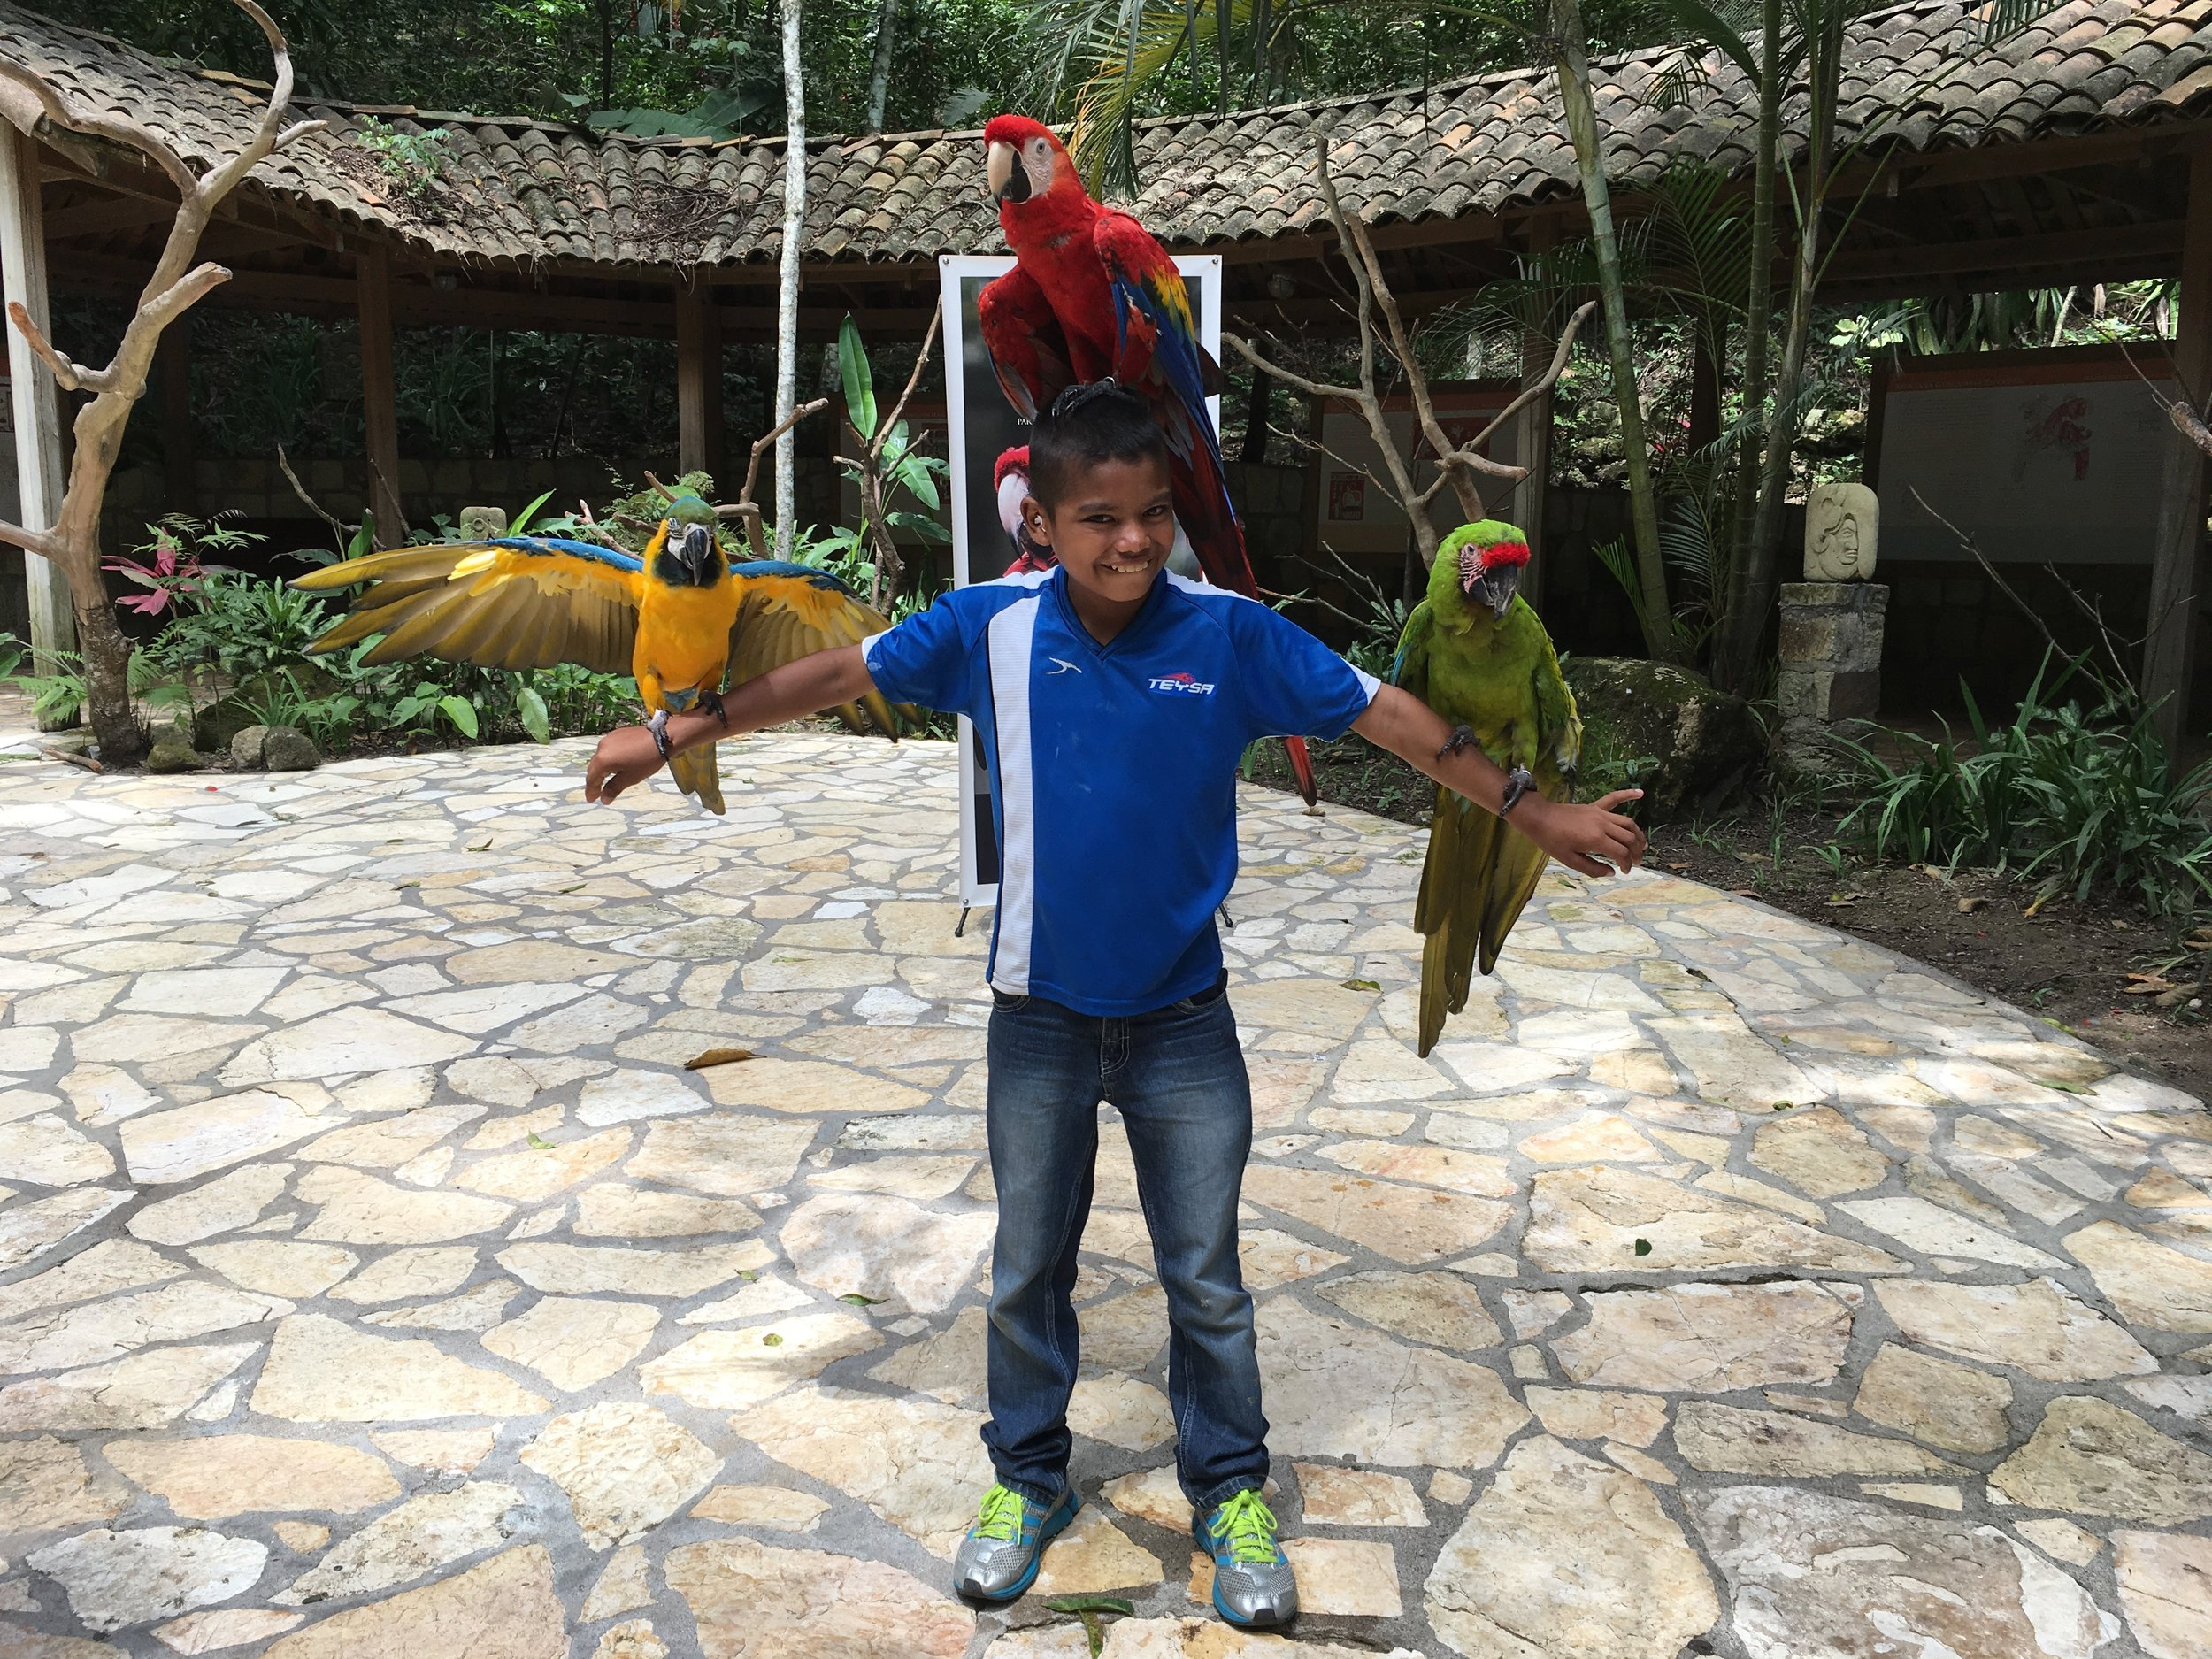 Emanuel visiting the Macaw Mountain Bird Park and Nature Reserve in Copan Ruinas during October vacations last year.